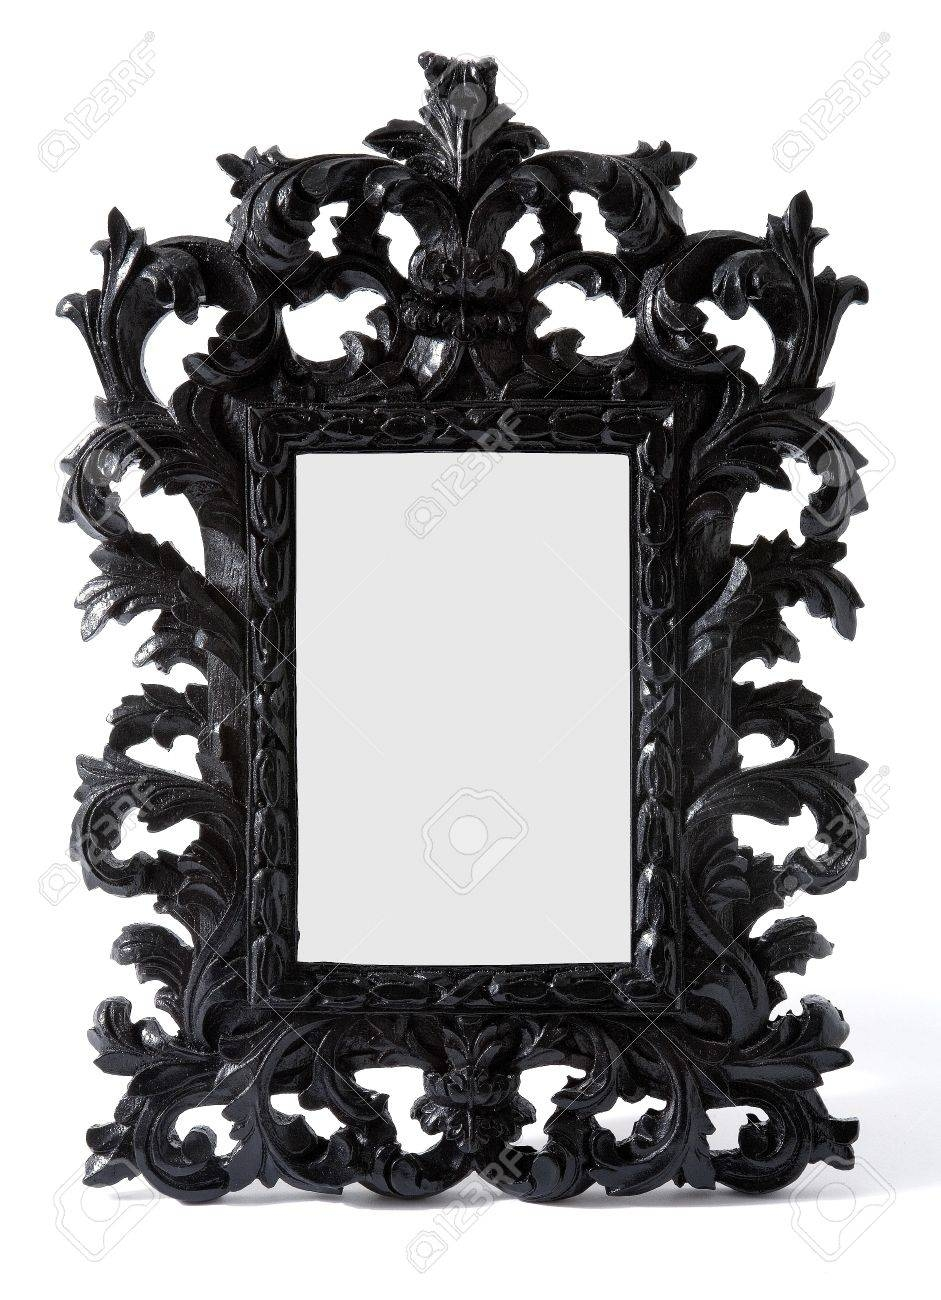 Baroque Black Painted Carved Wood Mirror Frame Isolated On White intended for Black Baroque Mirrors (Image 5 of 25)